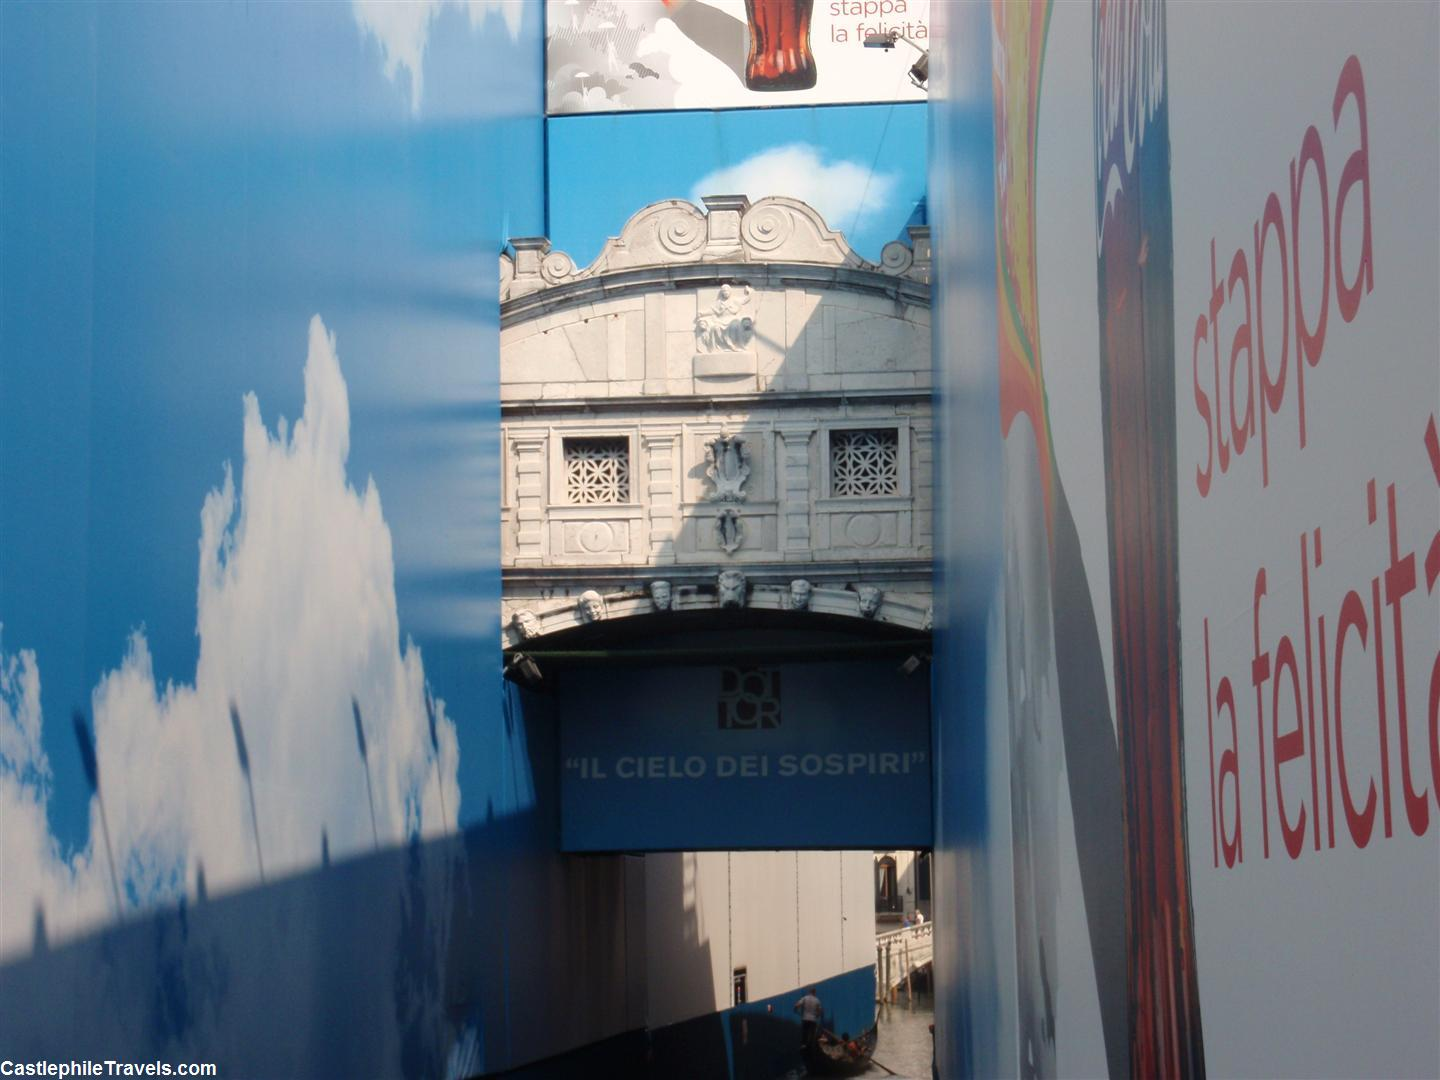 Advertising surrounding The Bridge of Sighs